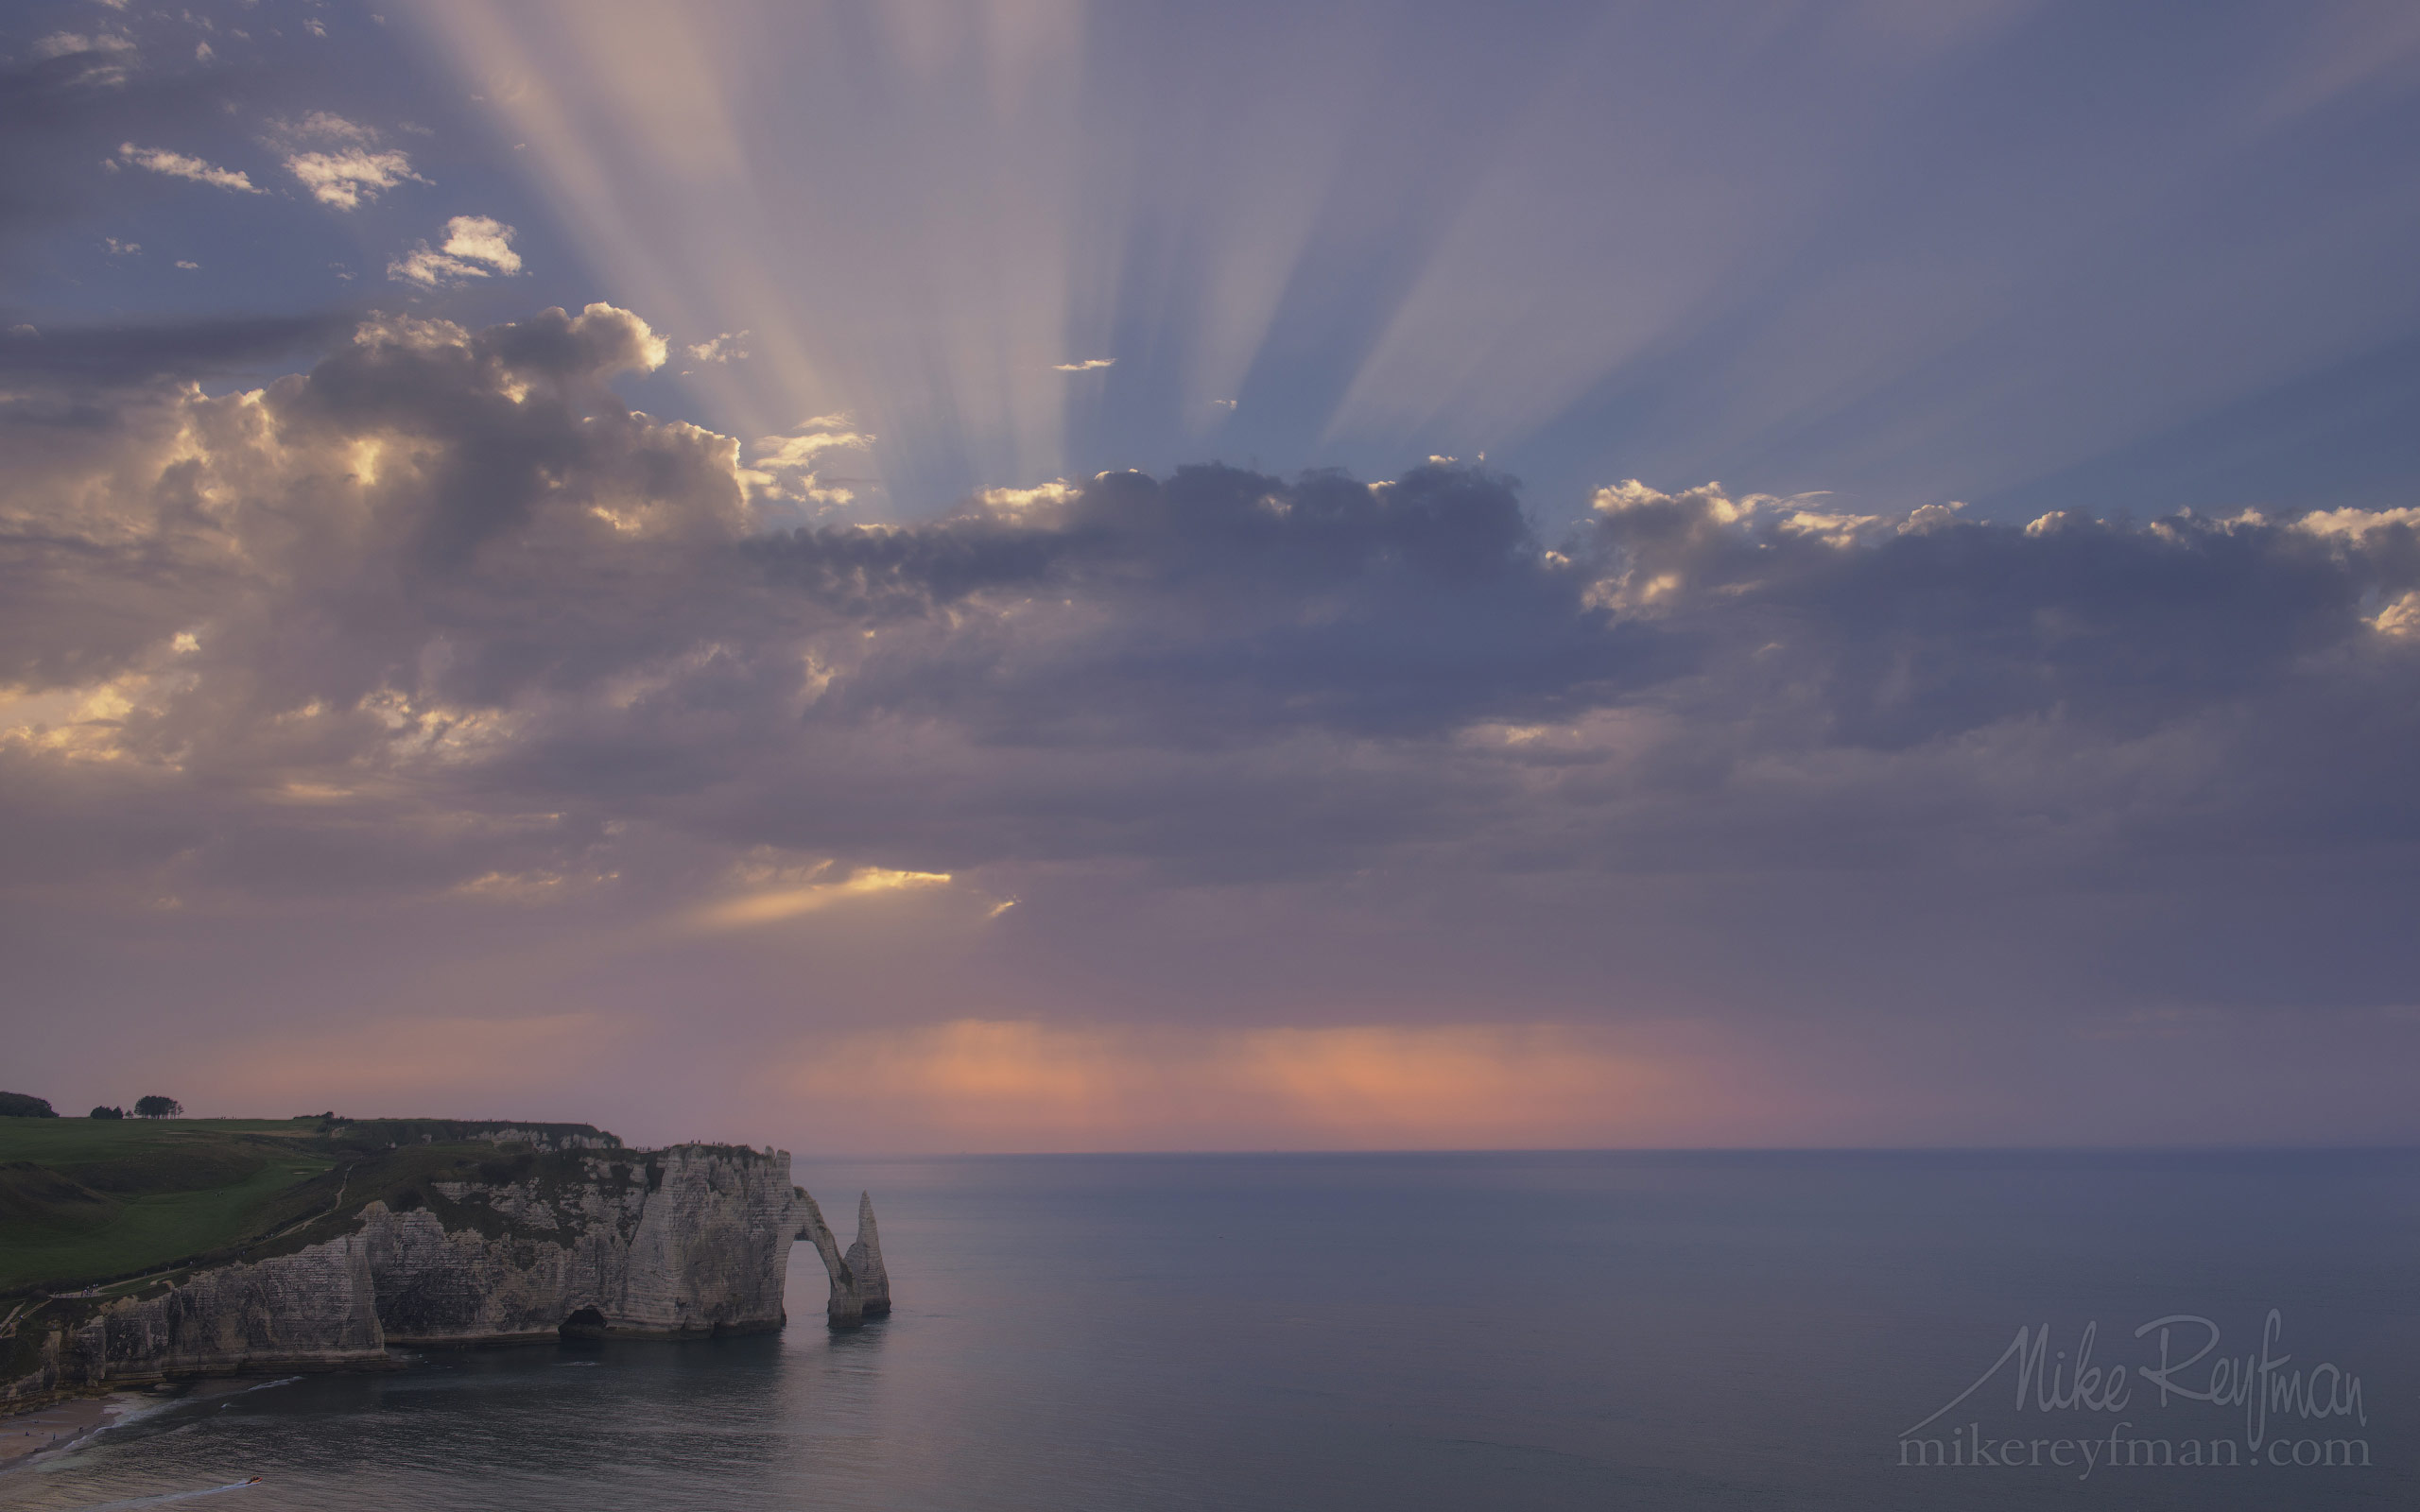 Arch Porte d'Aval and L'Aiguille - the Needle at sunset. Cote d'Albatre – The Alabaster Coast. Ertretat, Normandy, France ET1-MR50A0314 - White Chalk Cliffs and Arches of Alabaster Coast. Etretat, Upper Normandy, France - Mike Reyfman Photography